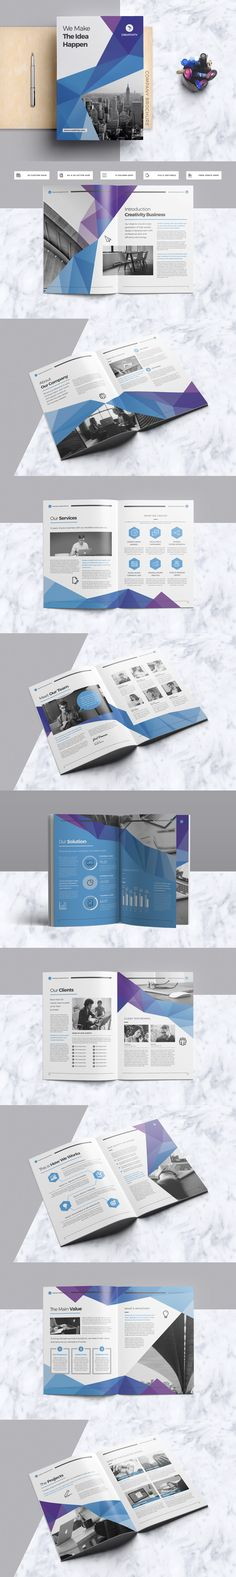 Creative & Clean Company Brochure Template InDesign INDD